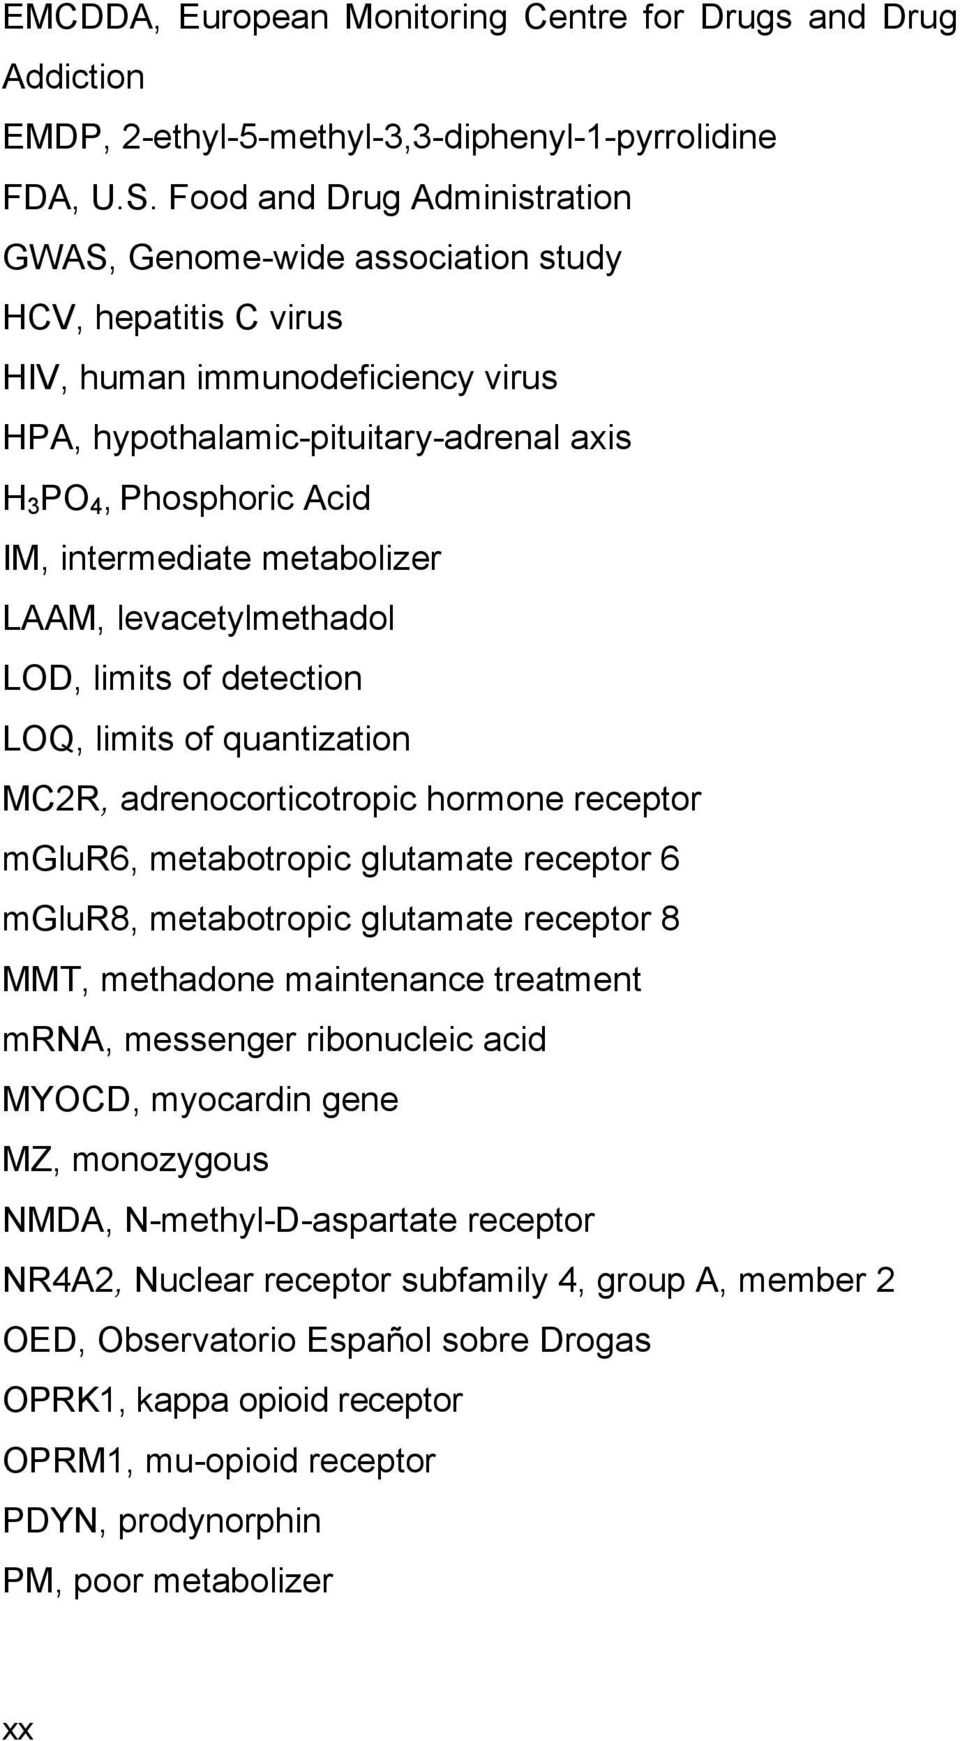 intermediate metabolizer LAAM, levacetylmethadol LOD, limits of detection LOQ, limits of quantization MC2R, adrenocorticotropic hormone receptor mglur6, metabotropic glutamate receptor 6 mglur8,